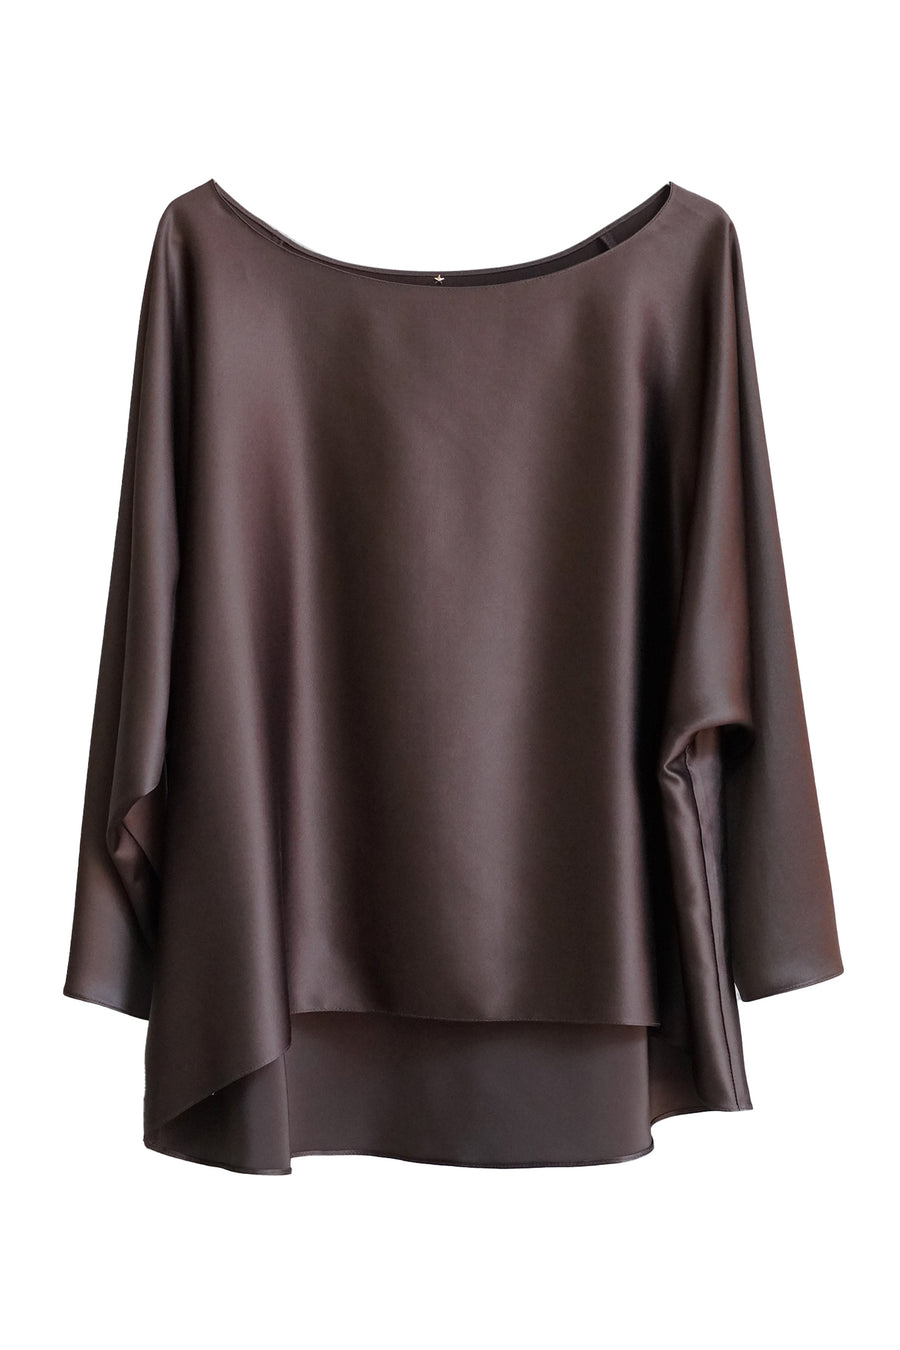 Chocolate Brown Silk 3/4 Sleeve Sway Top